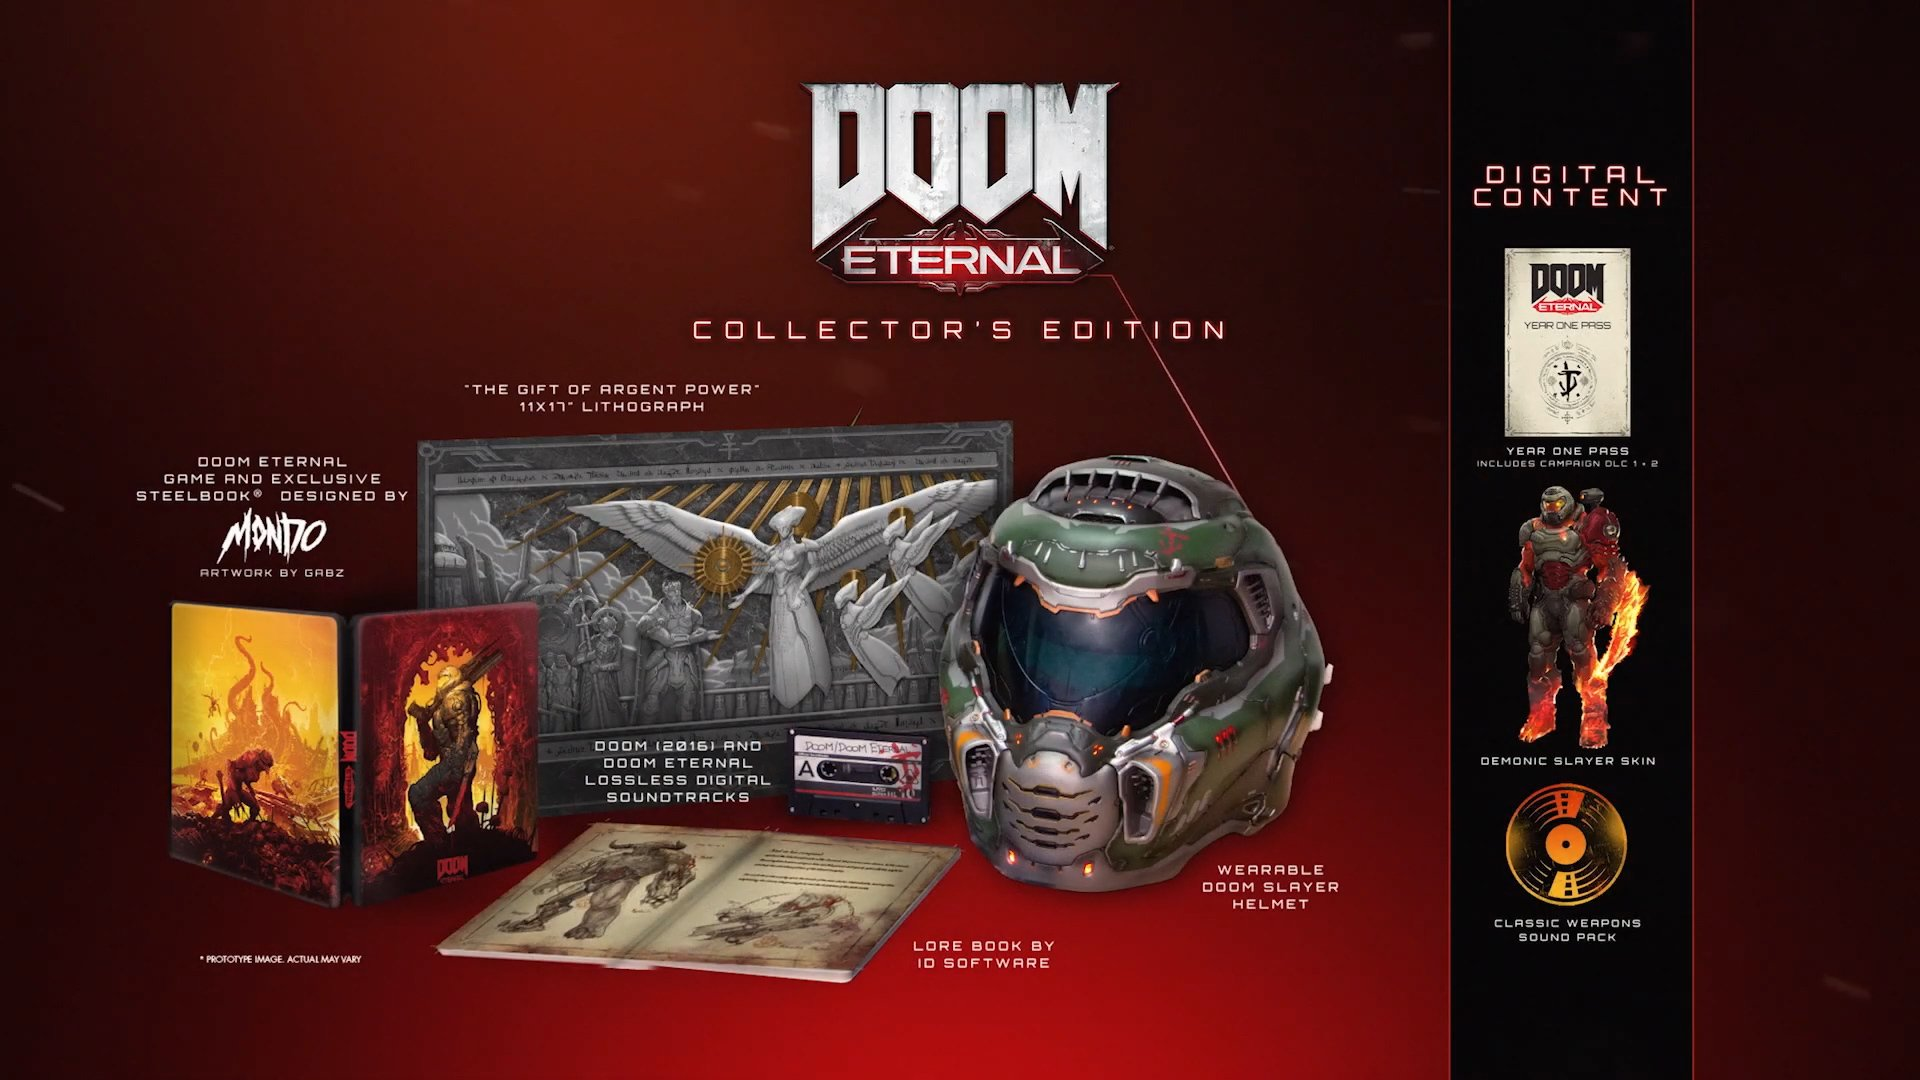 Doom Eternal will release on November 22, and is getting a Collector's Edition that includes an actual helmet!